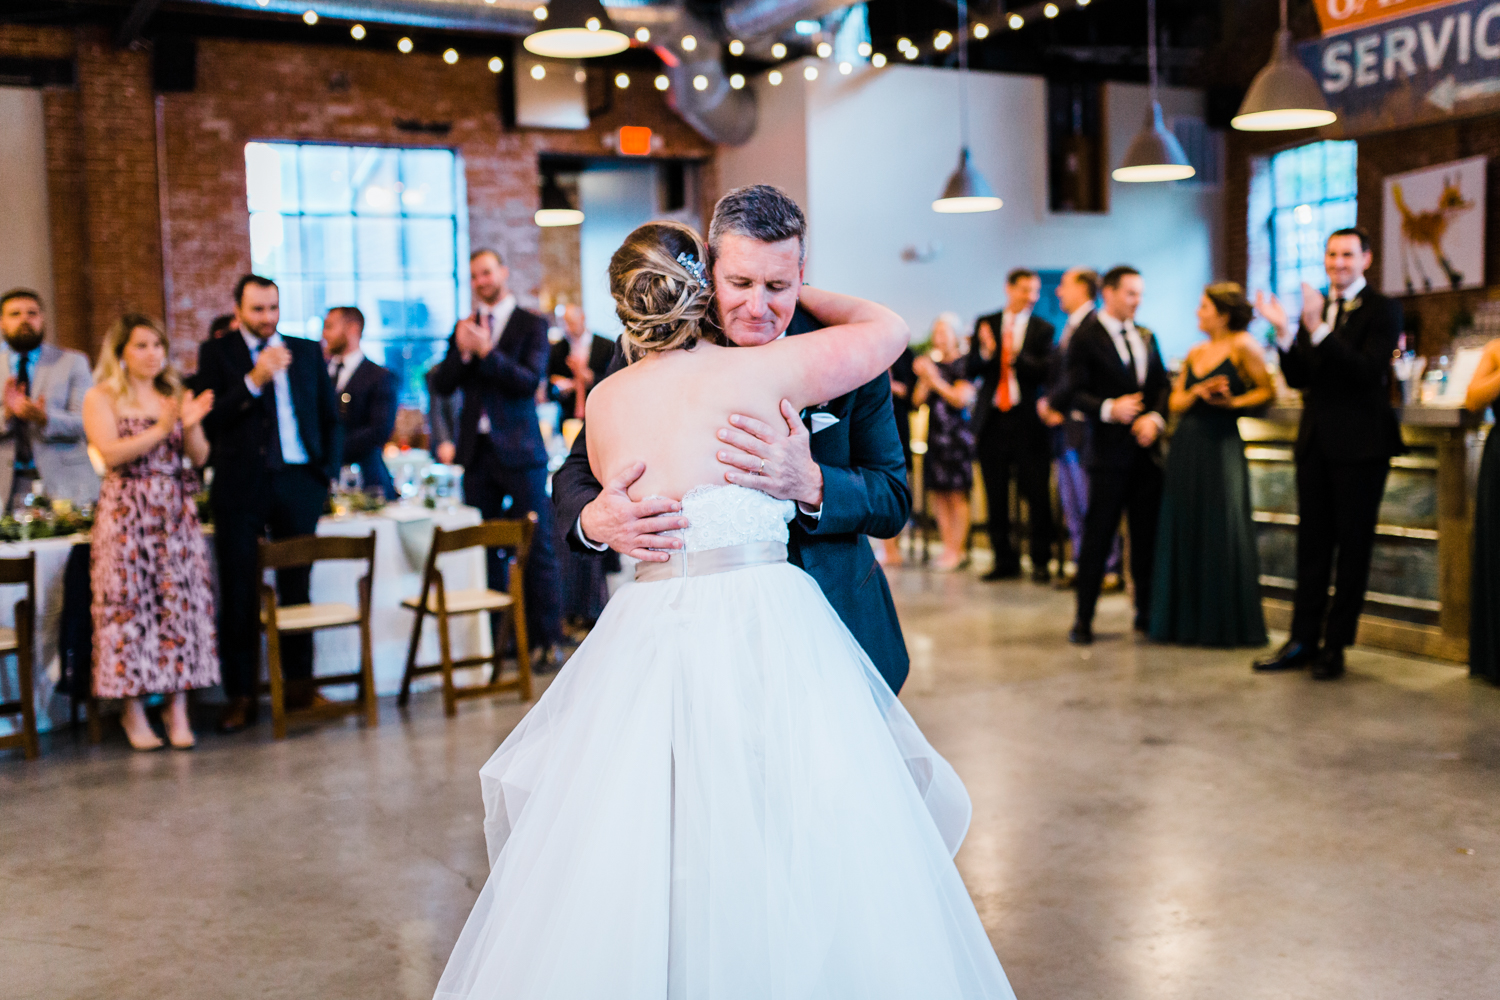 Father and bride dance together - Modern Distillery venue in Frederick MD